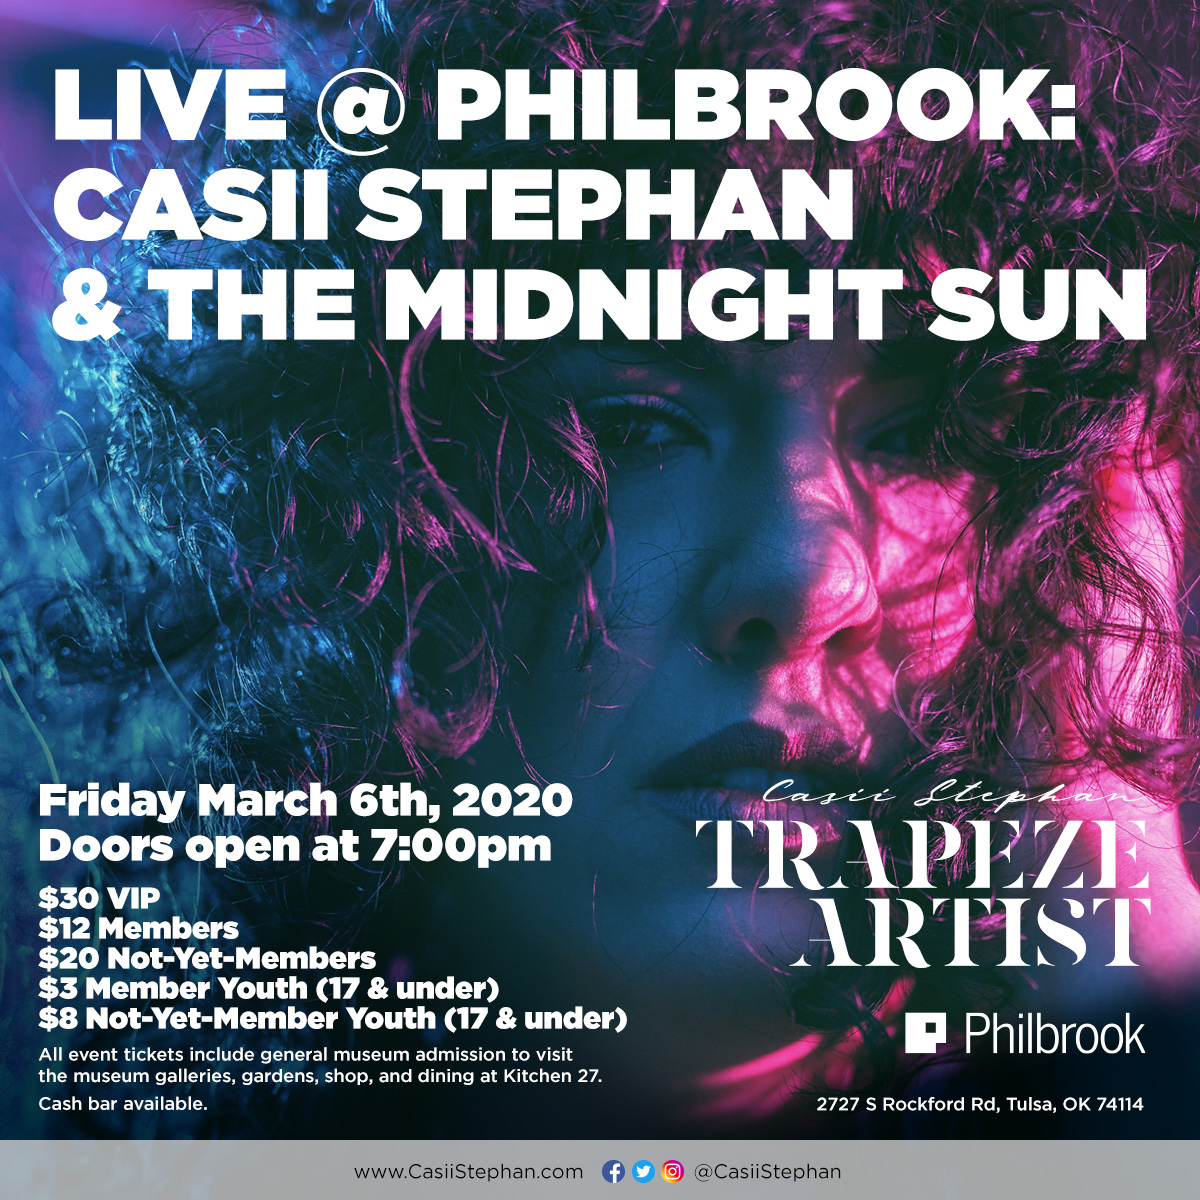 Live at Philbrook: Casii Stephan and The Midnight Sun